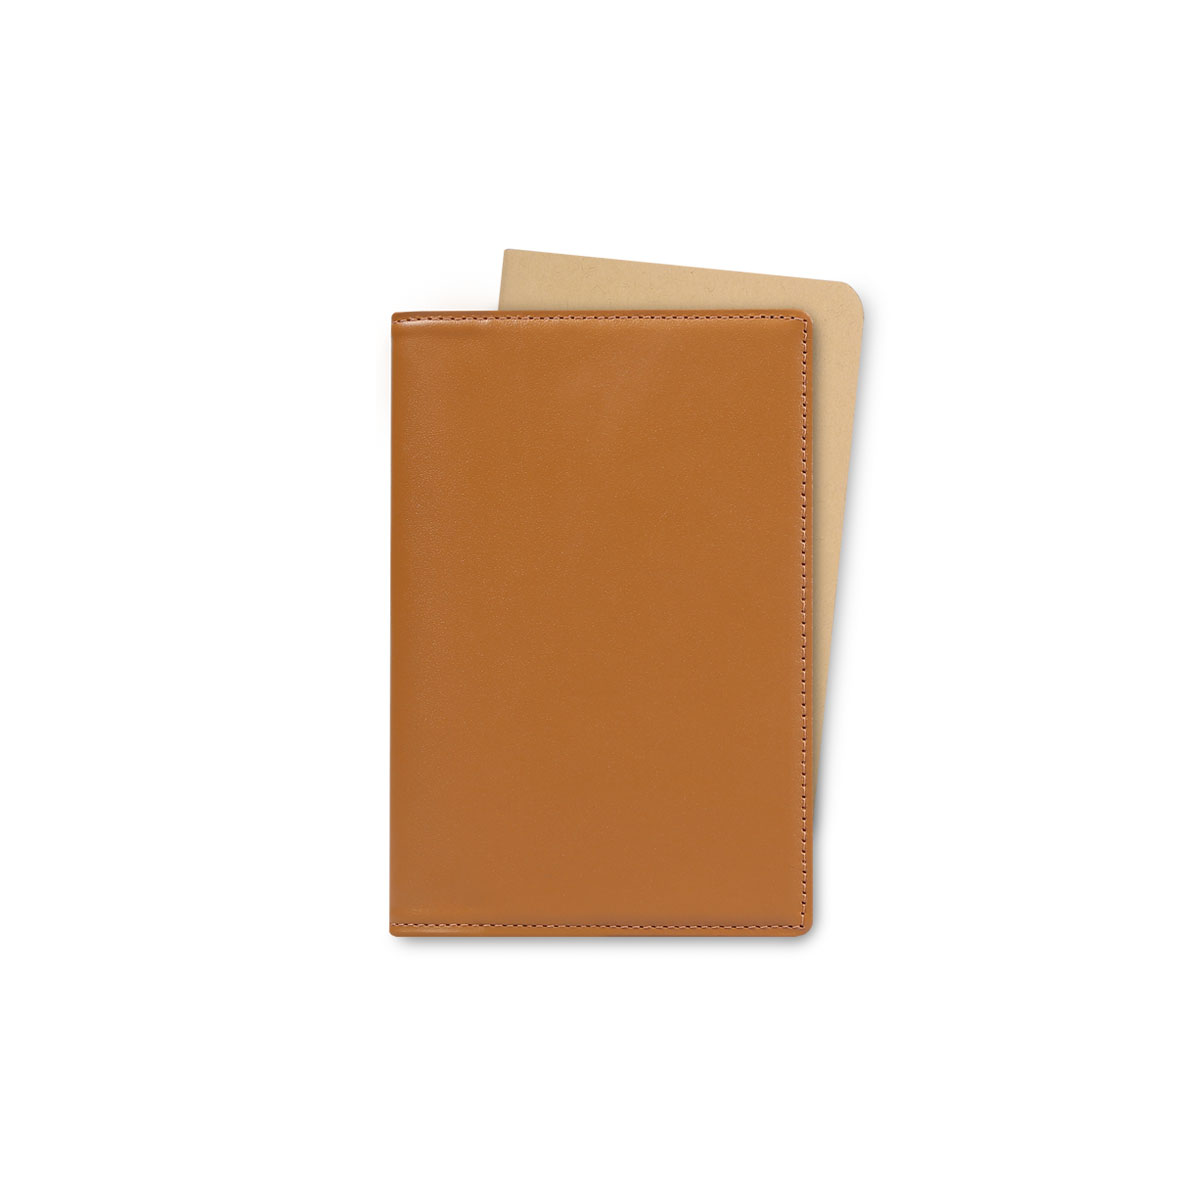 Note & Travel Cover Case Tan